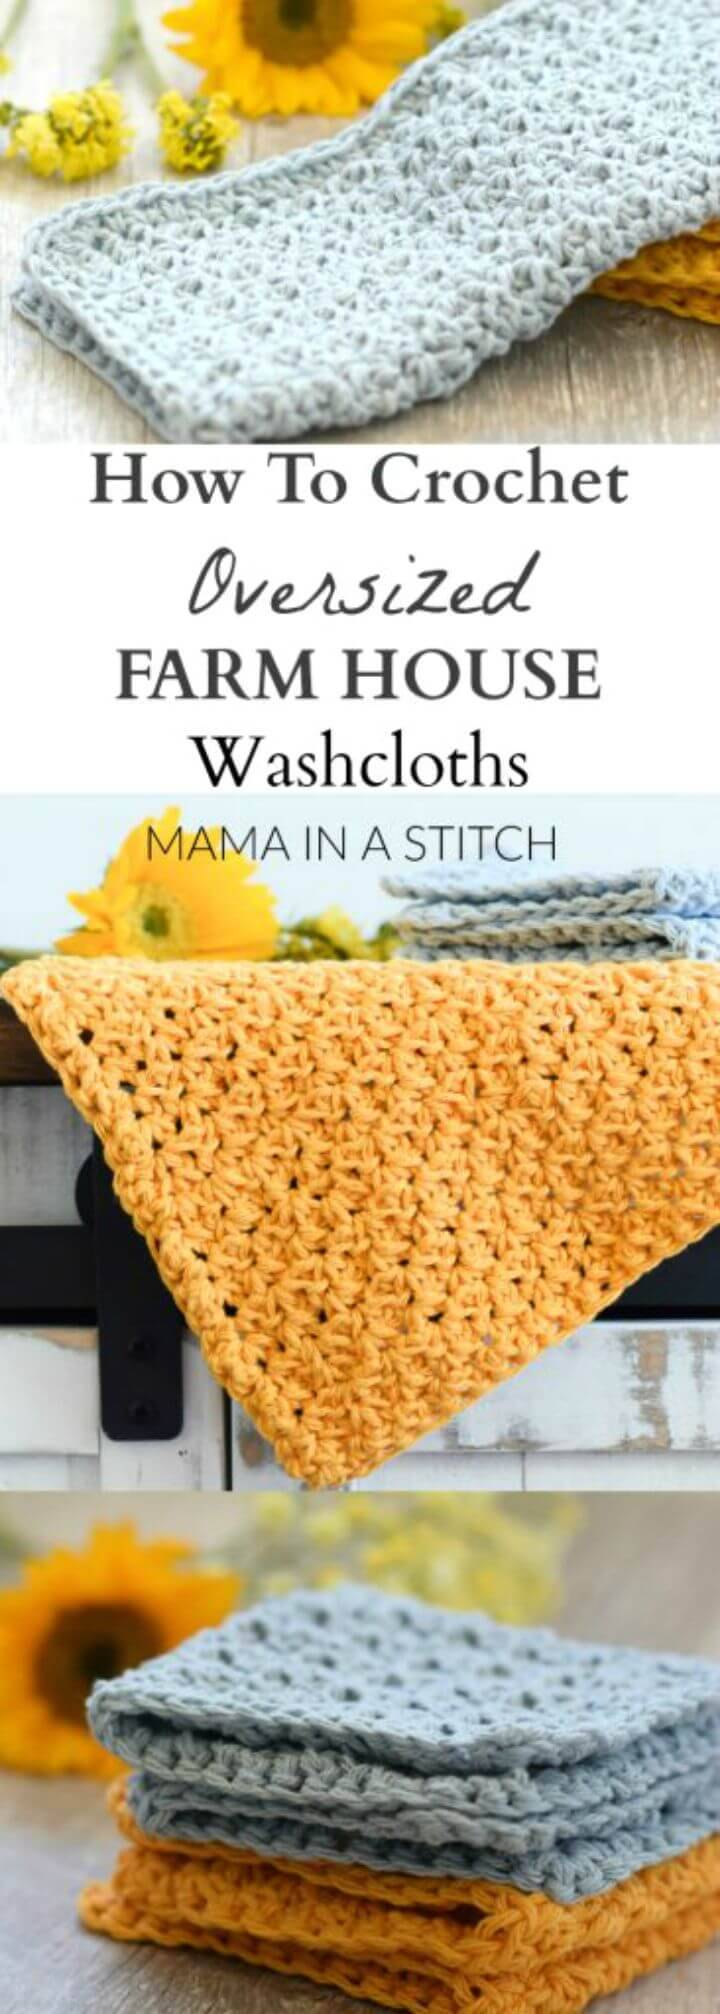 How to Crochet Farm House Washcloth - Free Pattern